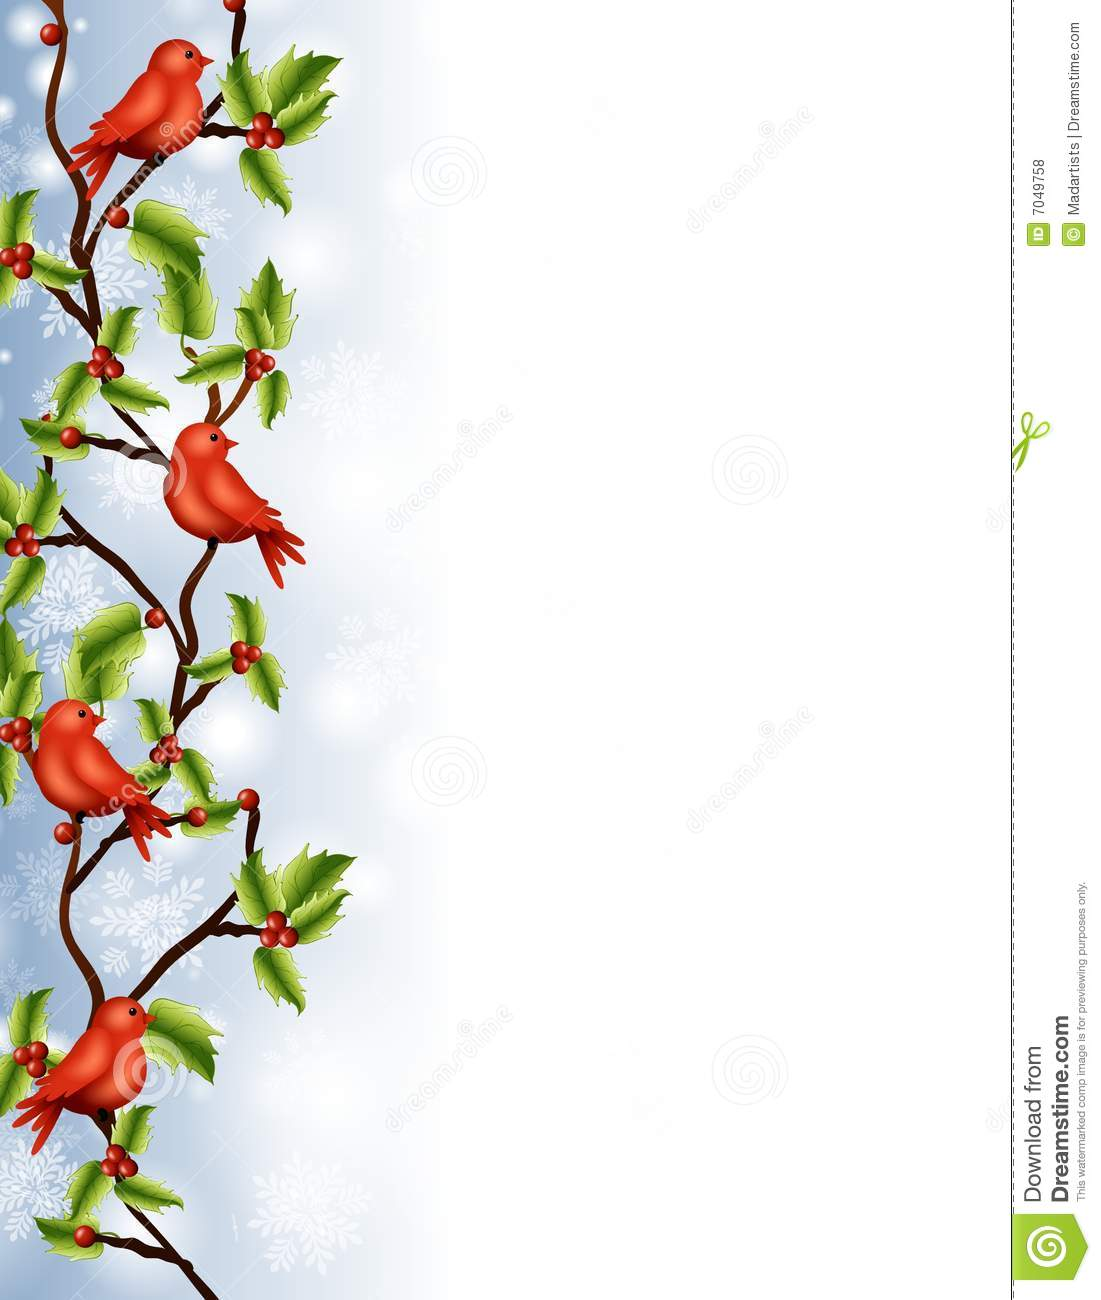 ... featuring a group of red birds sitting on a holly branch tree border